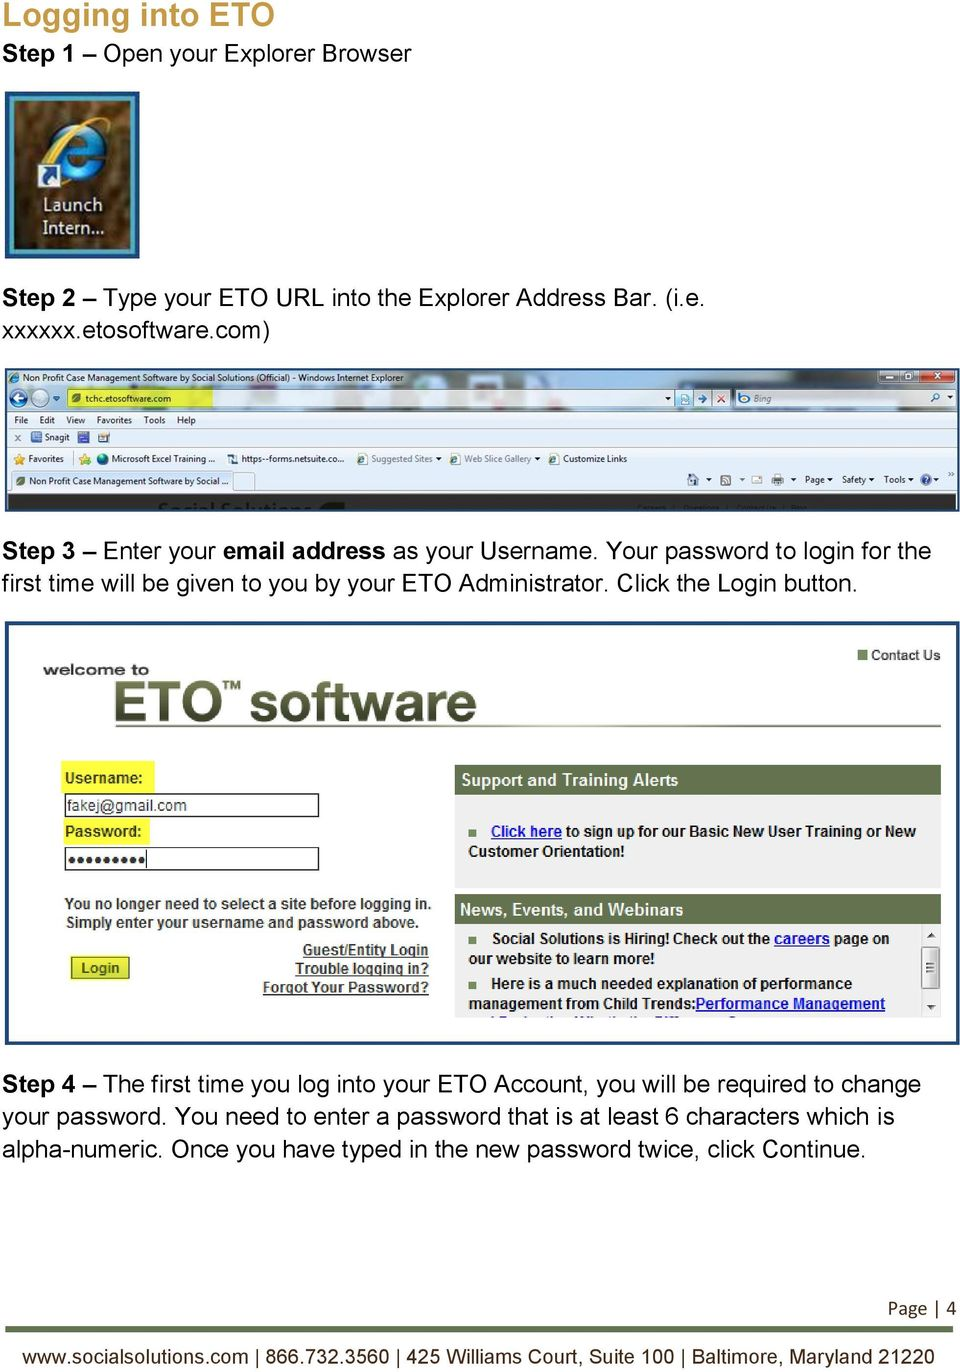 Your password to login for the first time will be given to you by your ETO Administrator. Click the Login button.